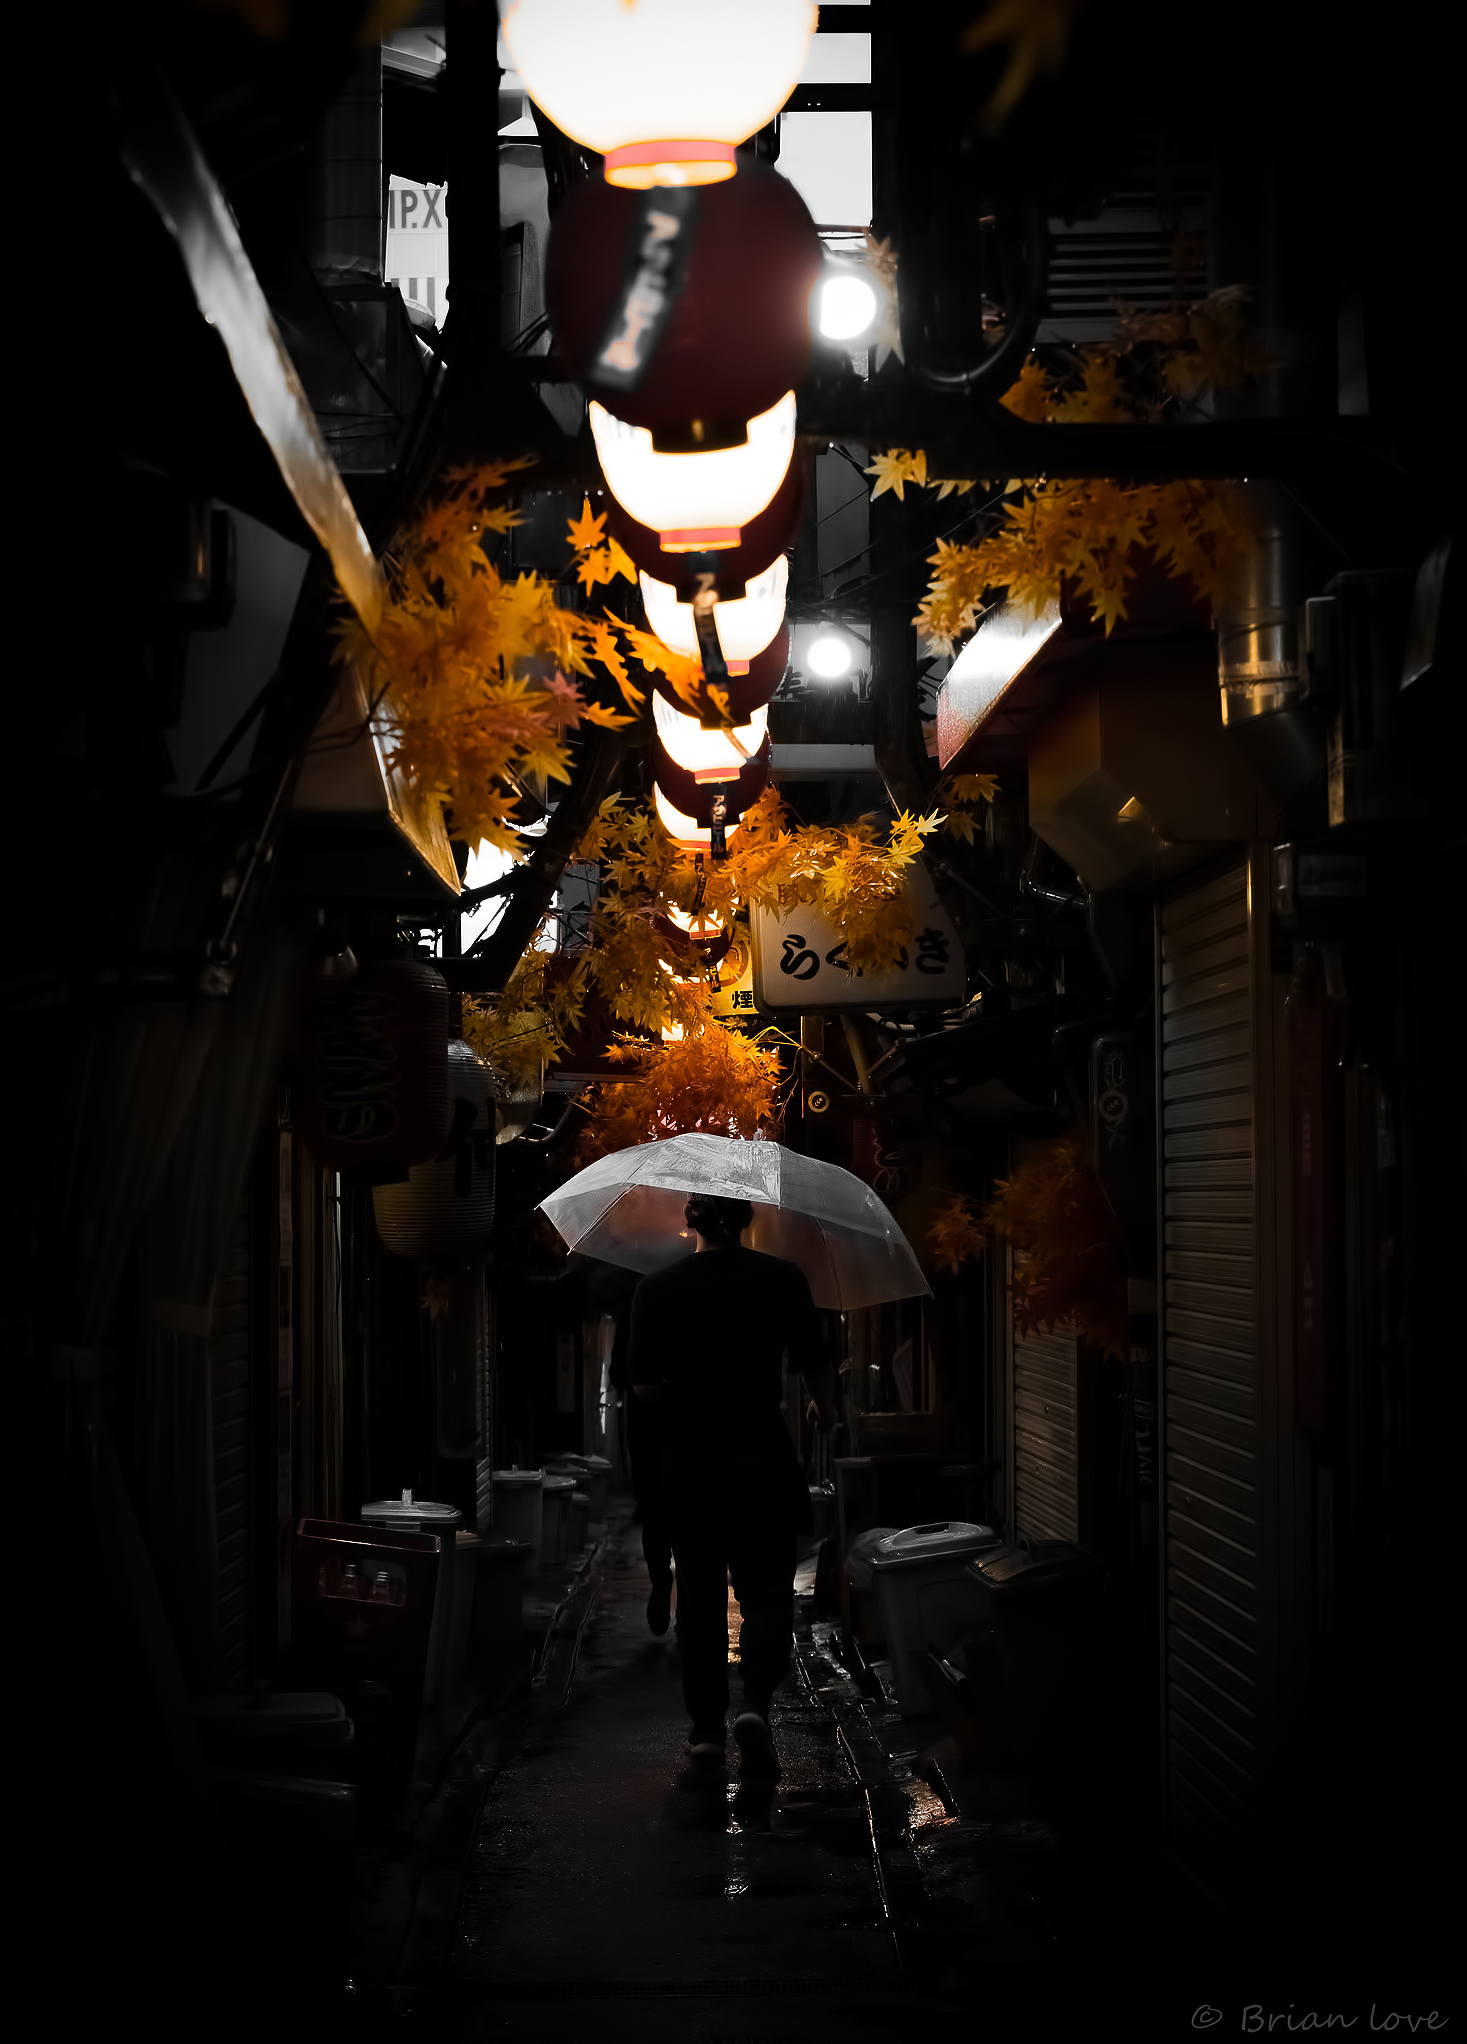 Autumn Leaves and Alleyway...